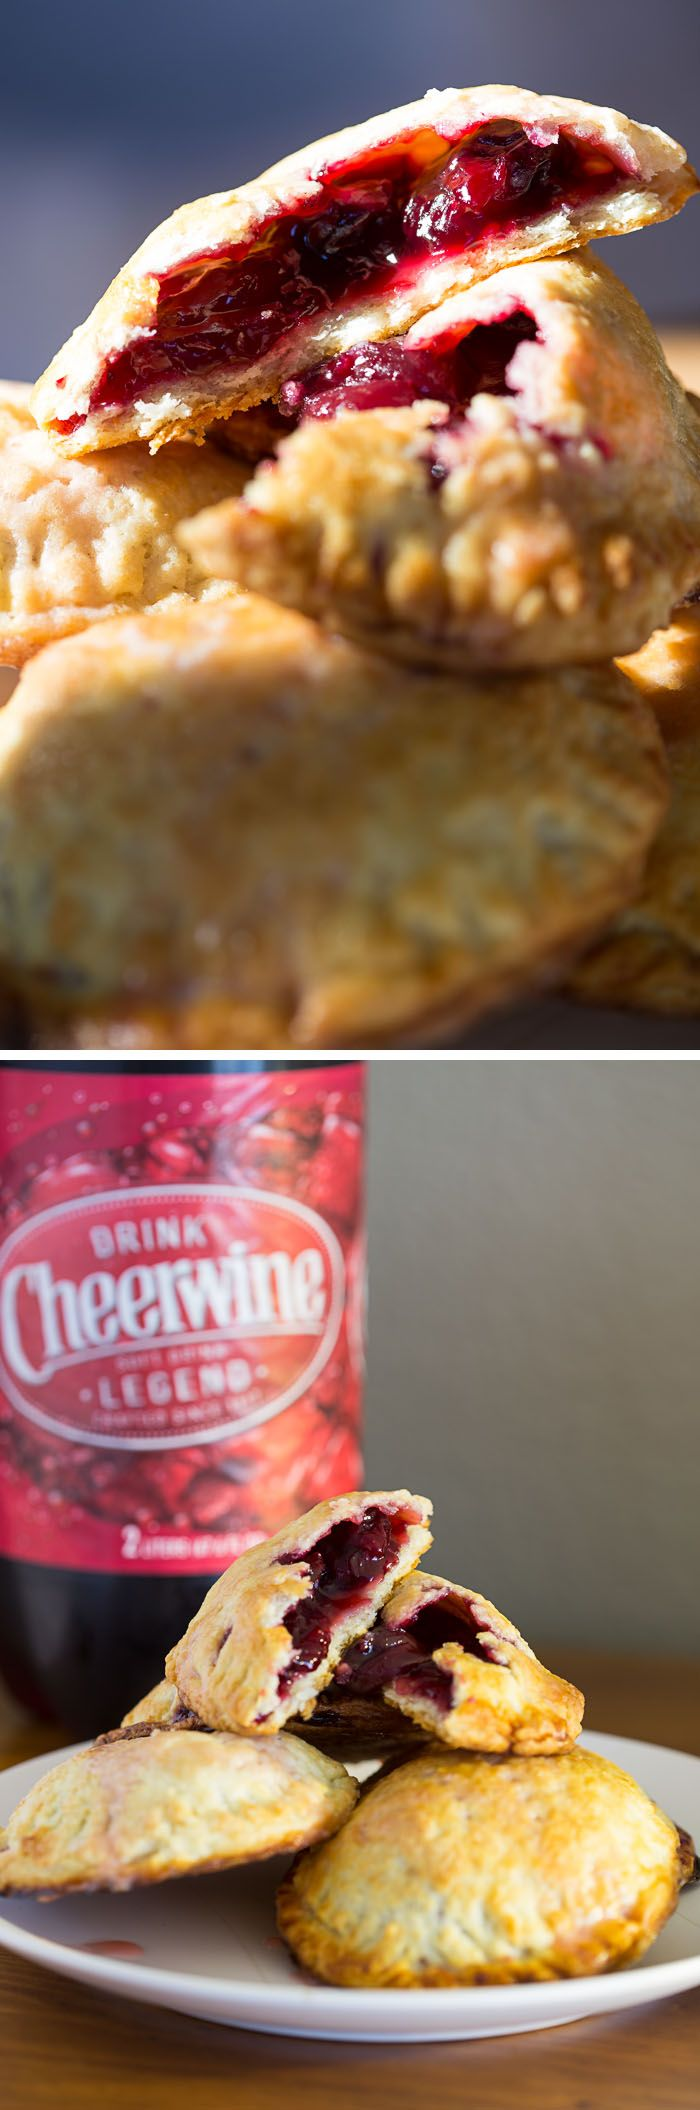 This recipe for Cheerwine Hand Pies is a made-from-scratch, delicious dessert and a tribute to my home state of North Carolina.